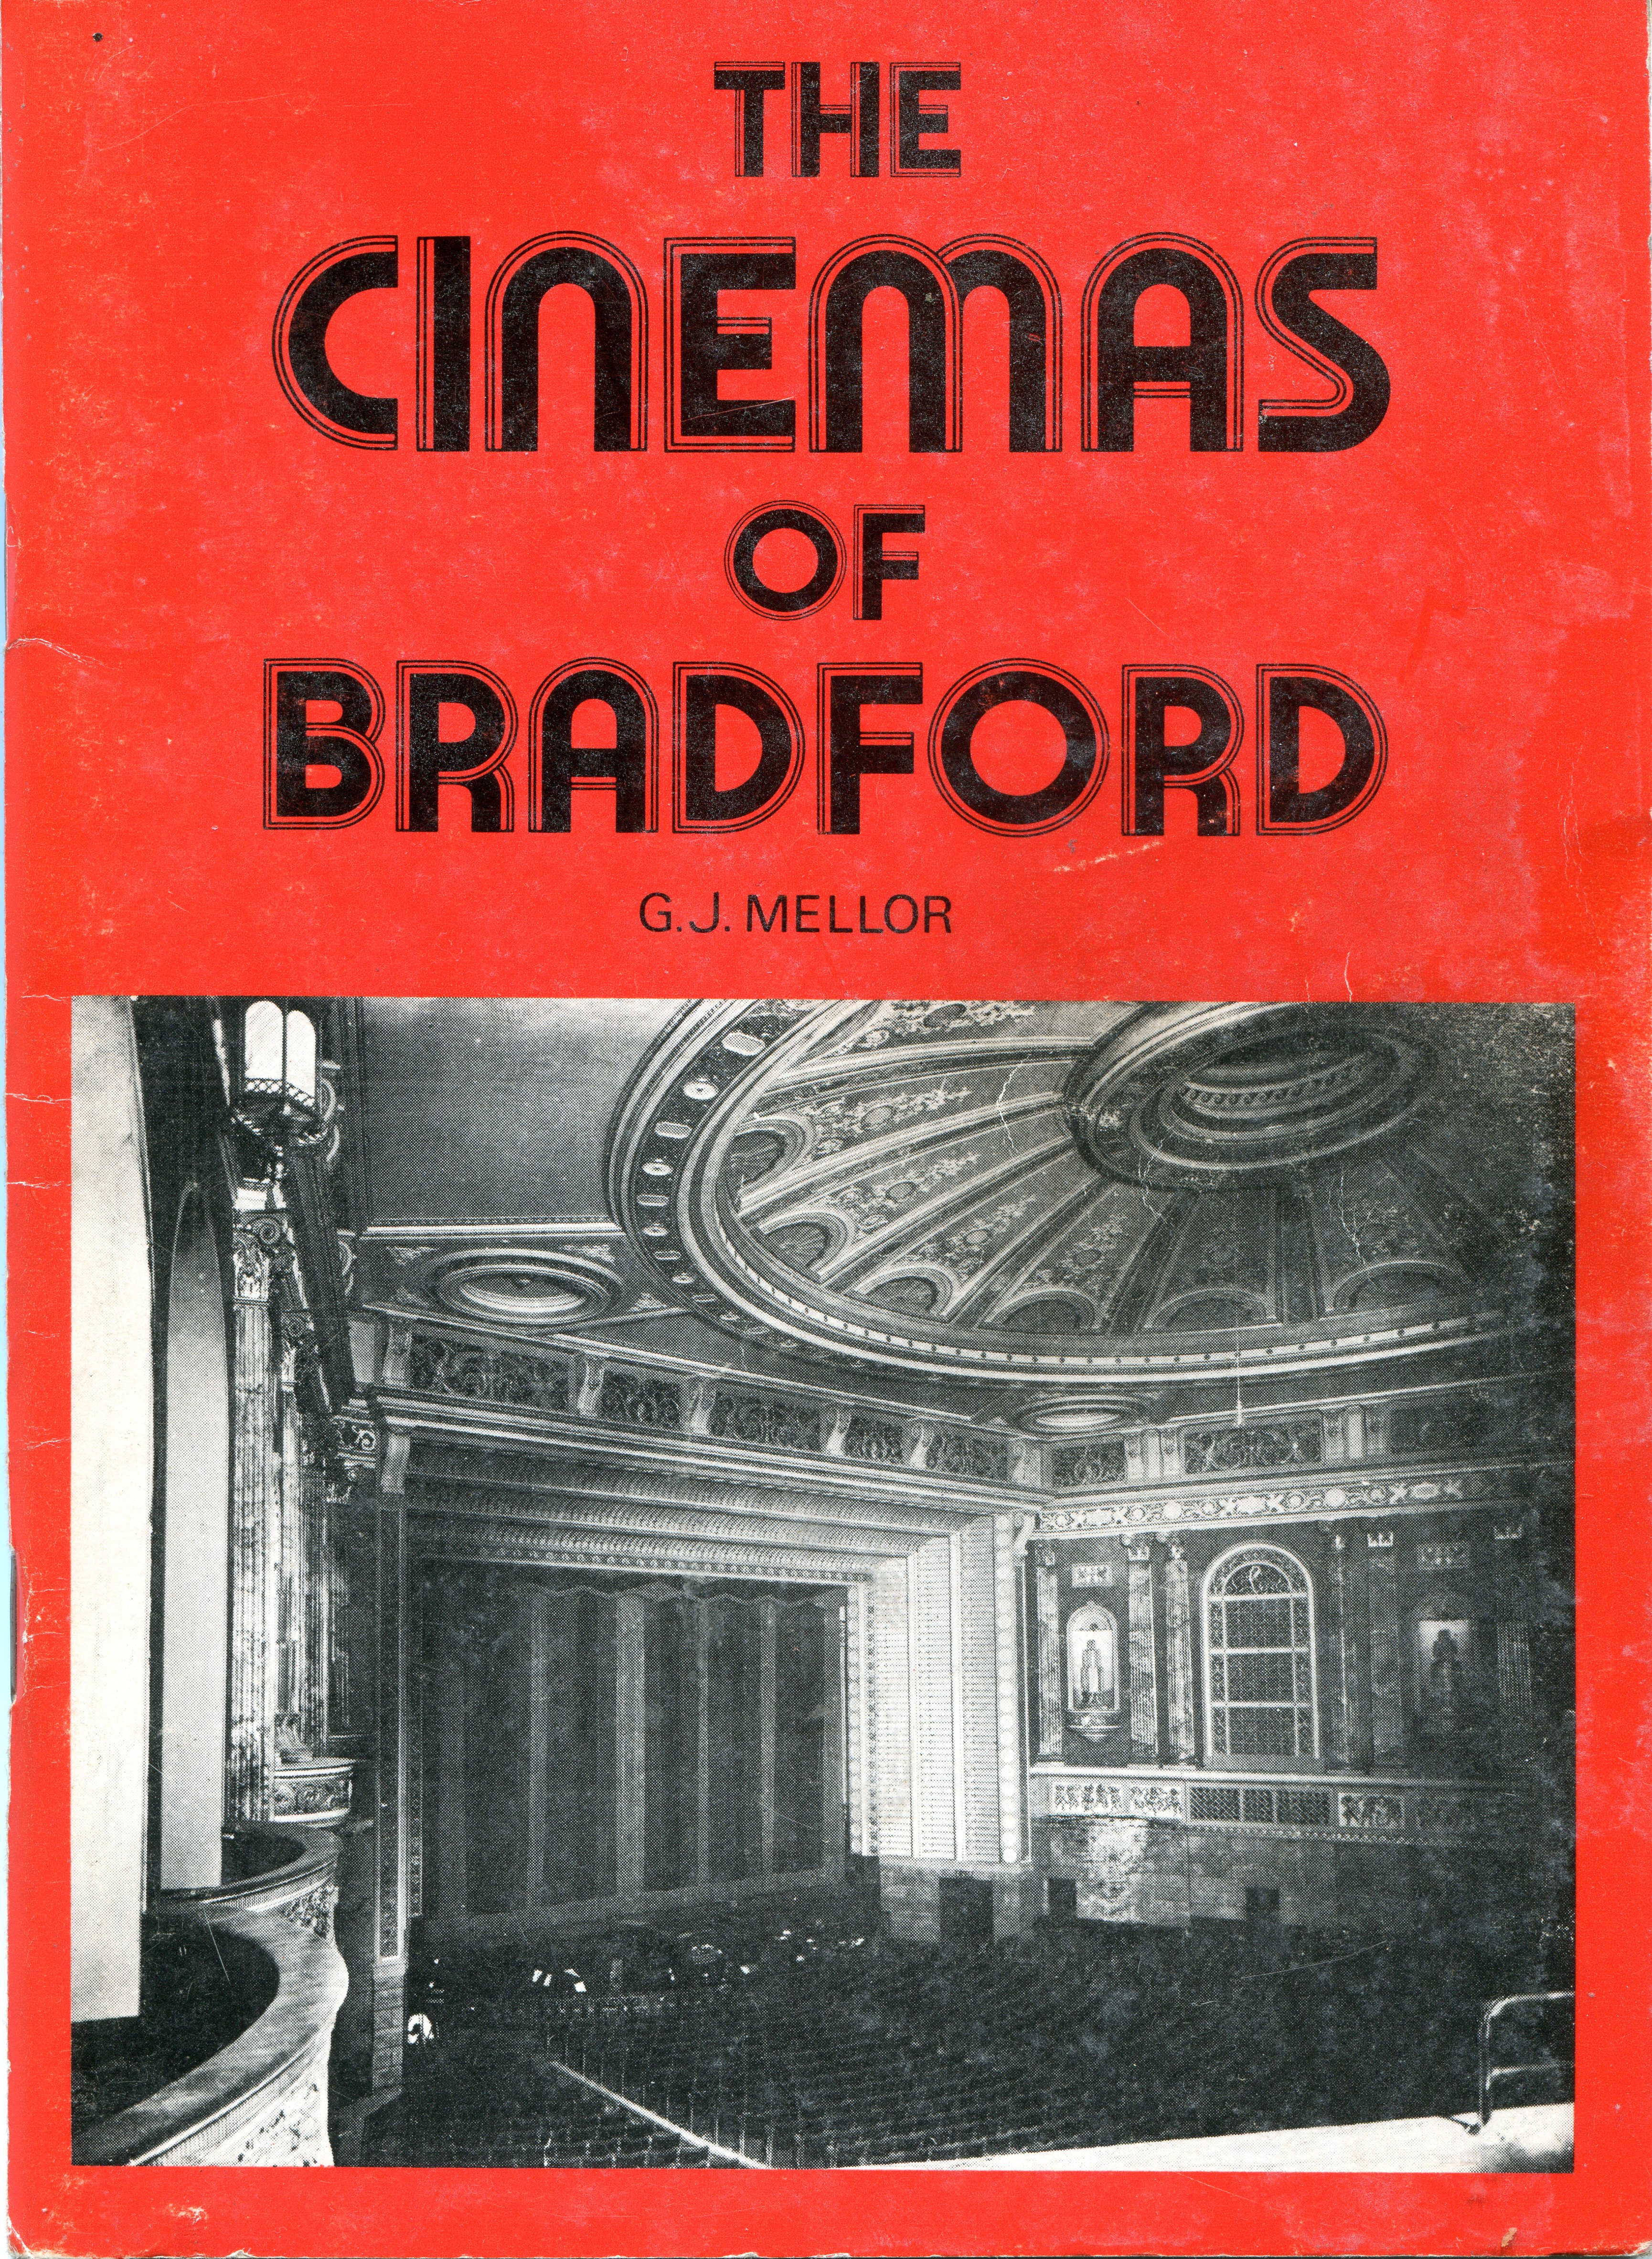 The Cinemas of Bradford 082.jpg